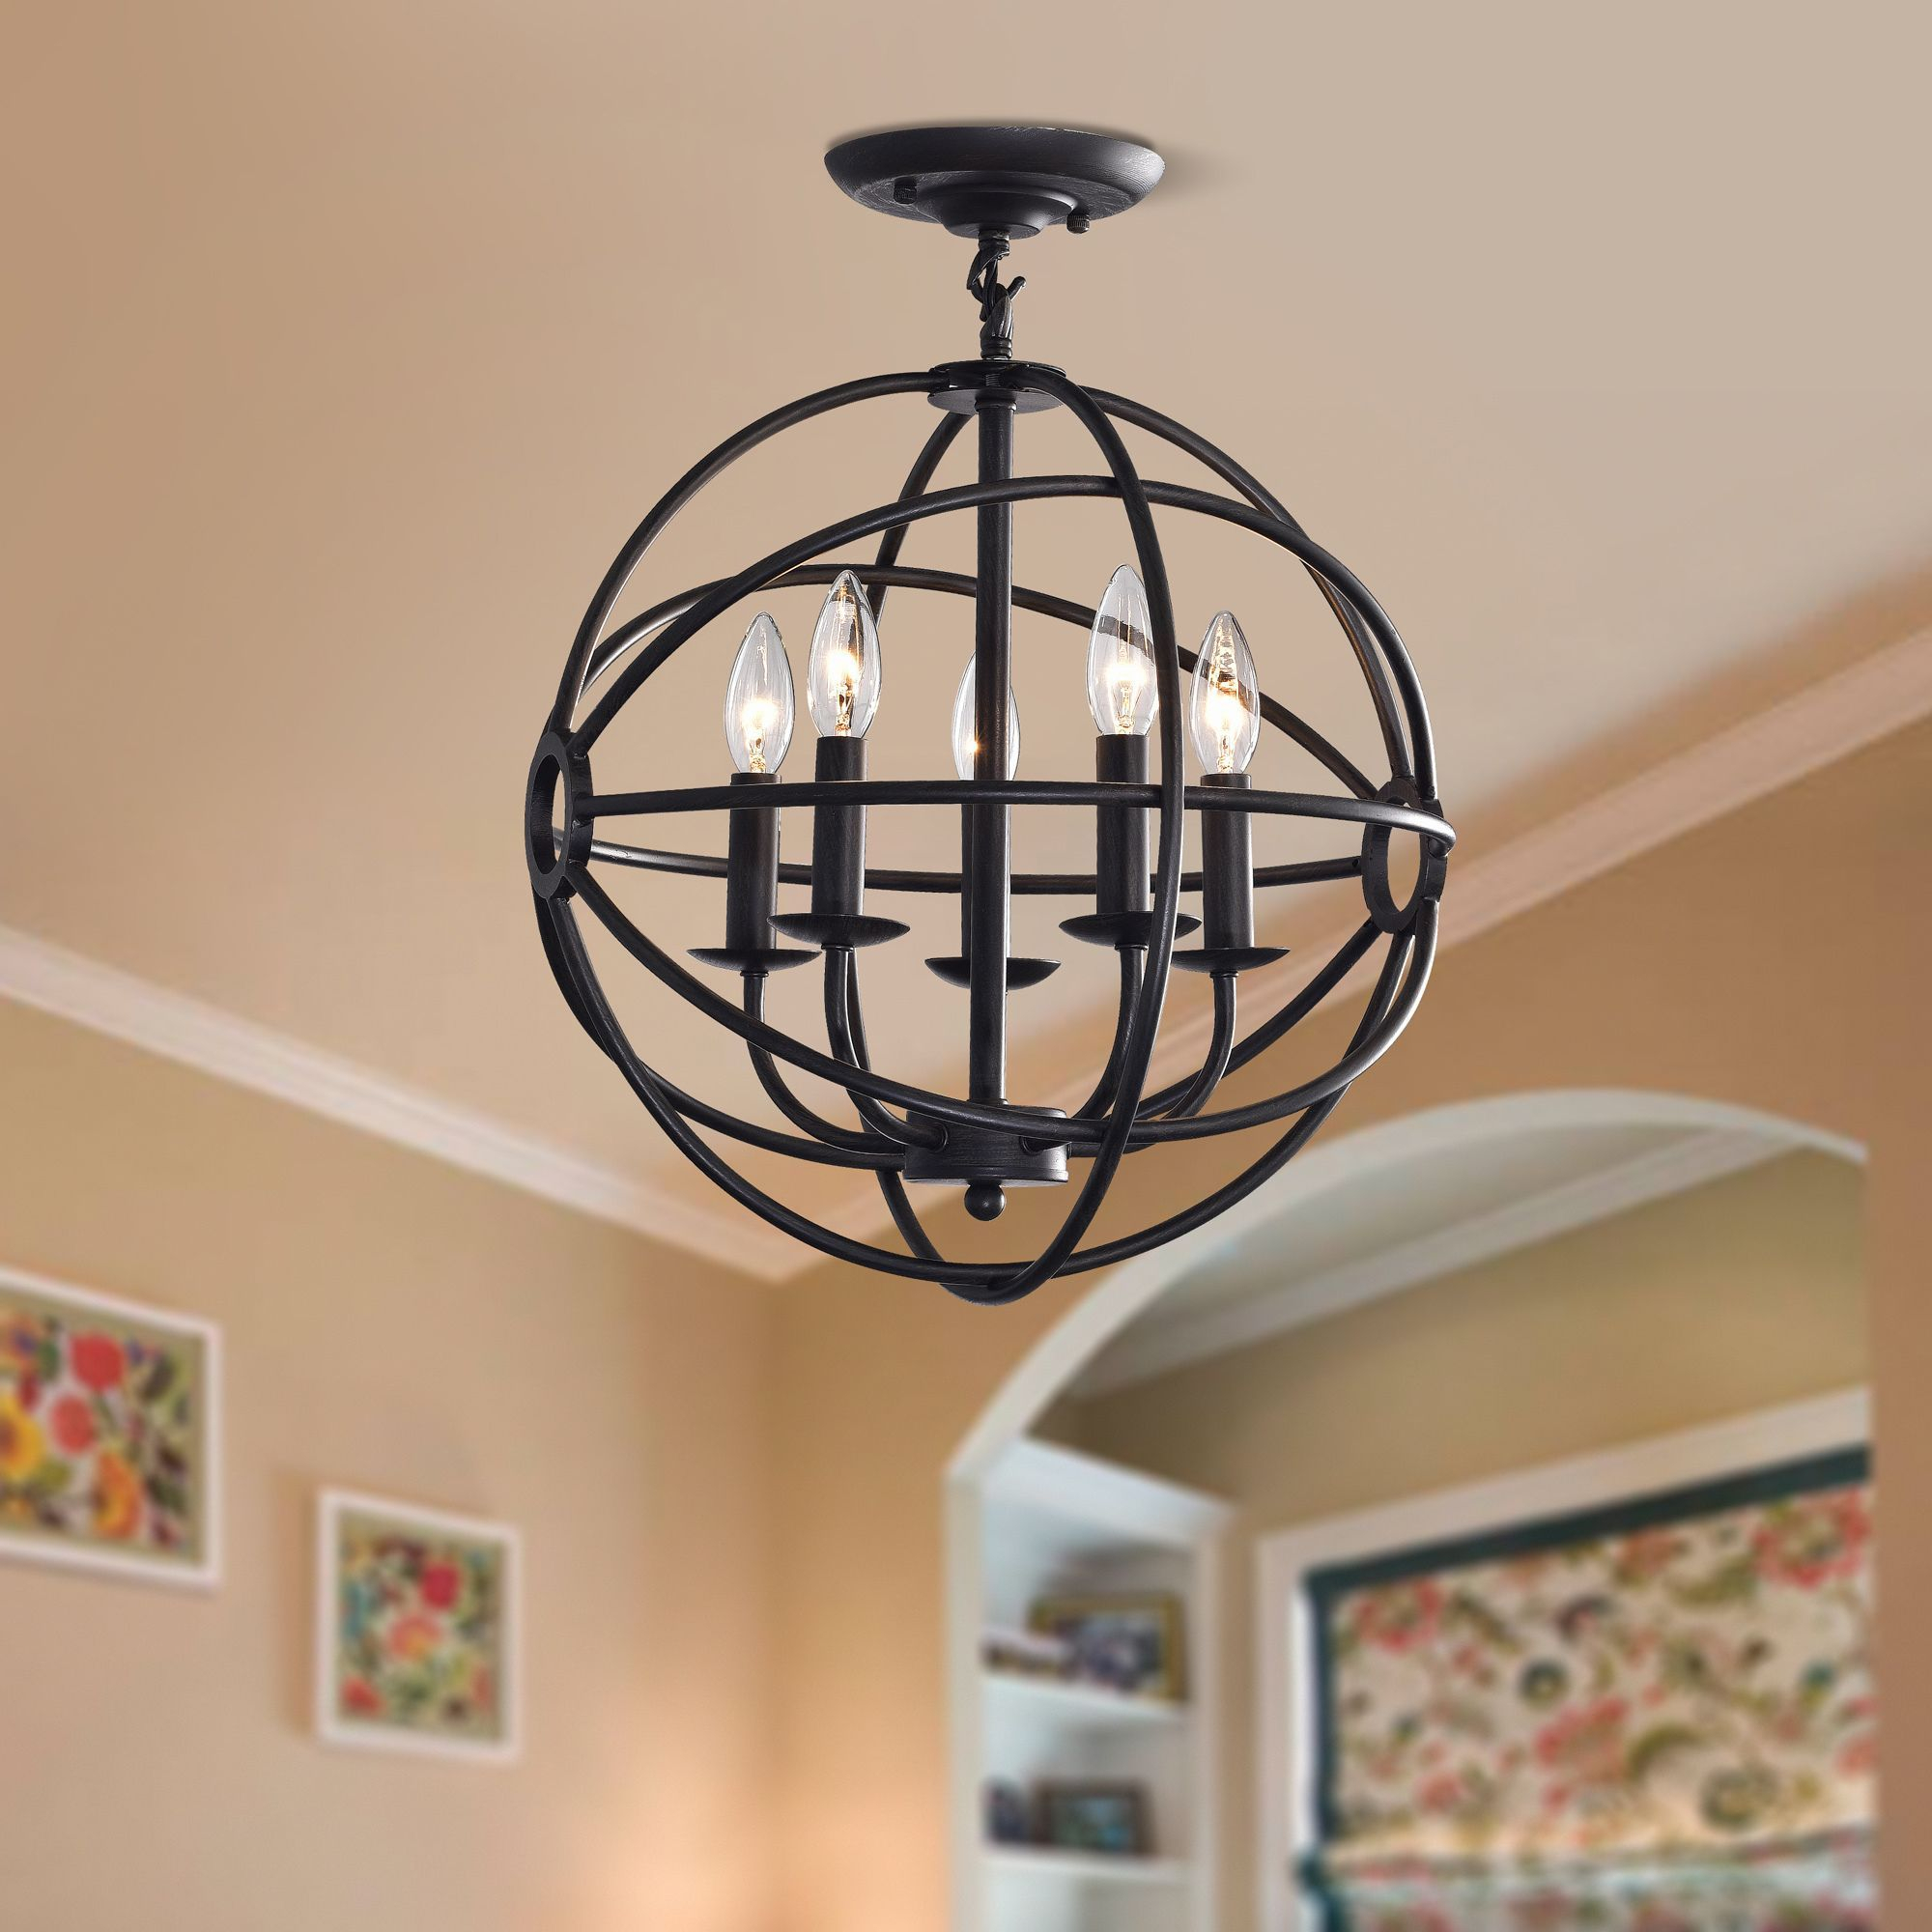 Benita Antique Black 5 Light Iron Orb Flush Mount Chandelier Pertaining To Verlene Foyer 5 Light Globe Chandeliers (View 16 of 30)